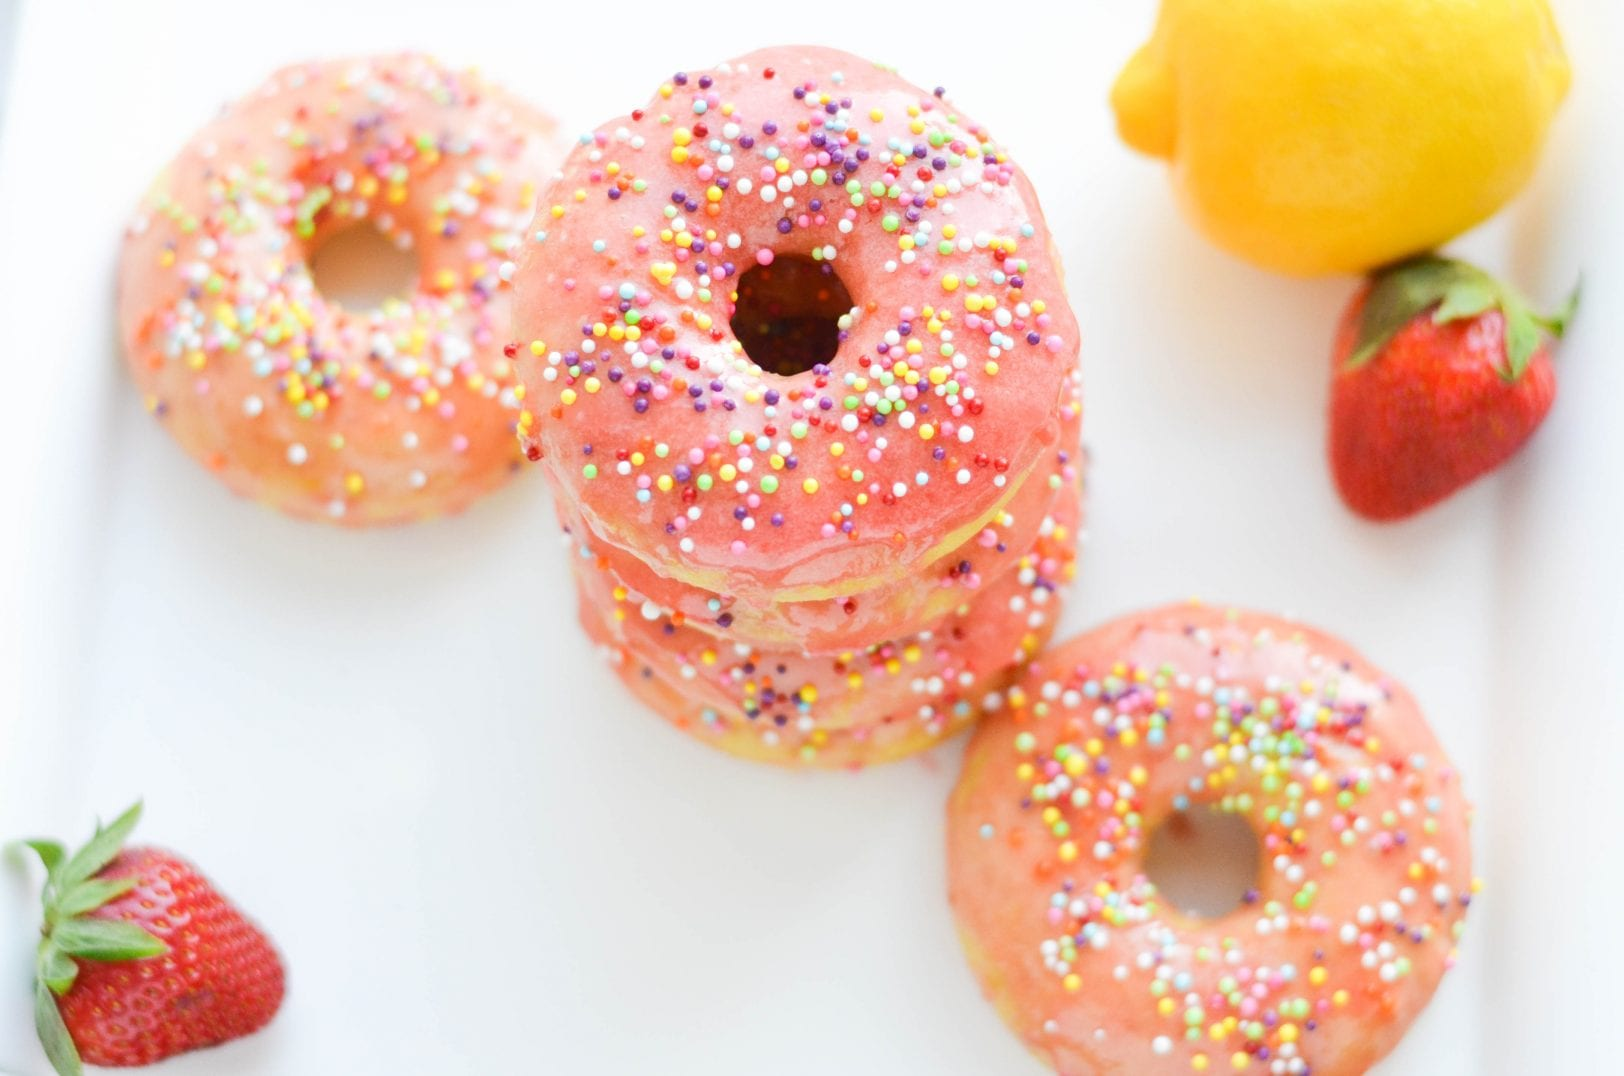 Baked Strawberry Lemon Donuts